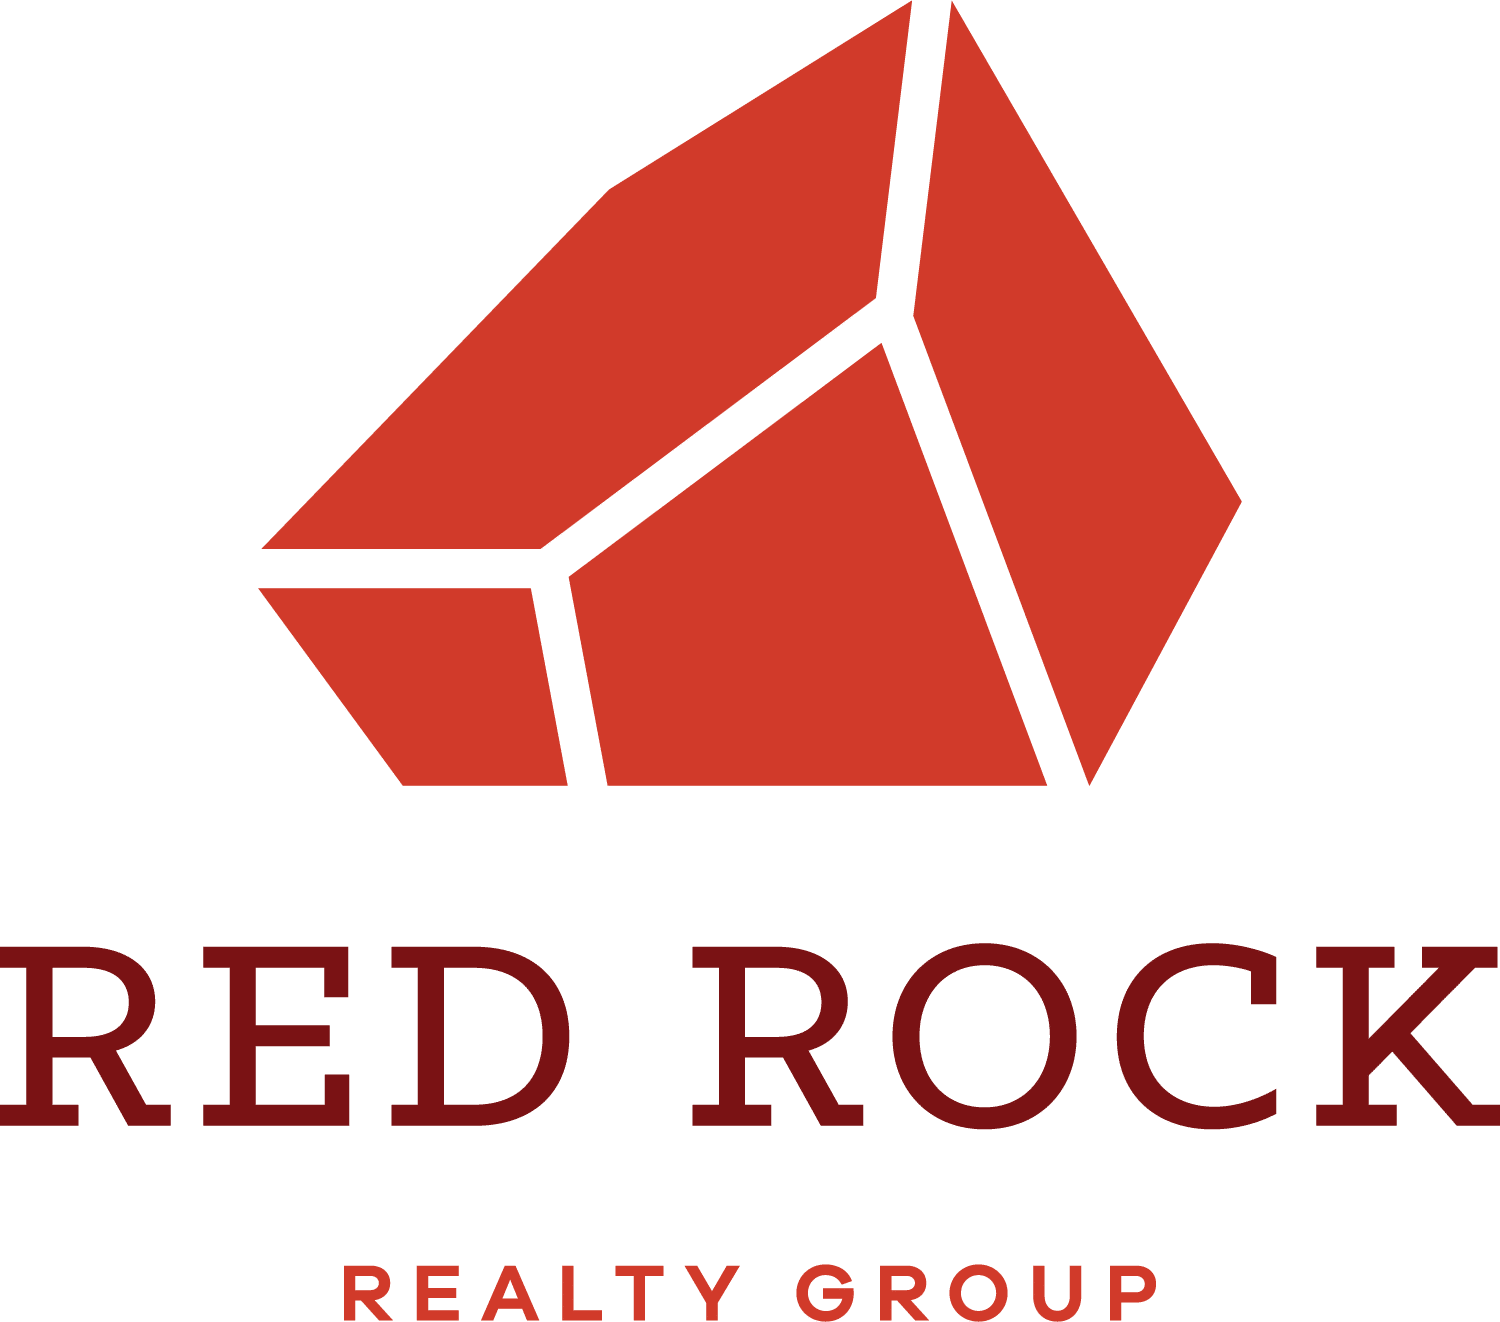 Red Rock Realty